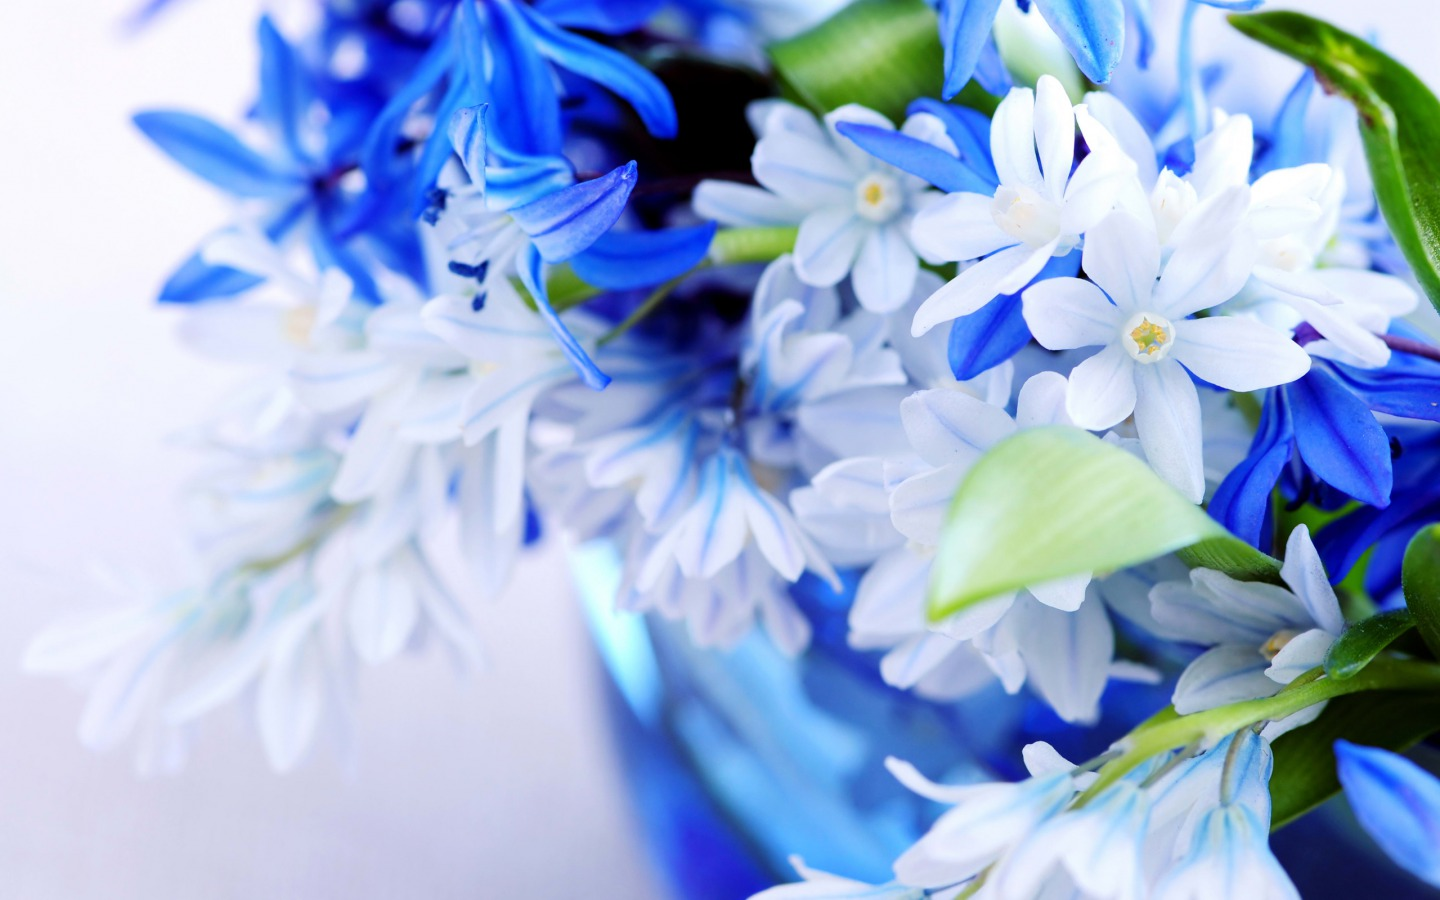 Blue white flowers wallpaper 1440x900 29517 blue white flowers mightylinksfo